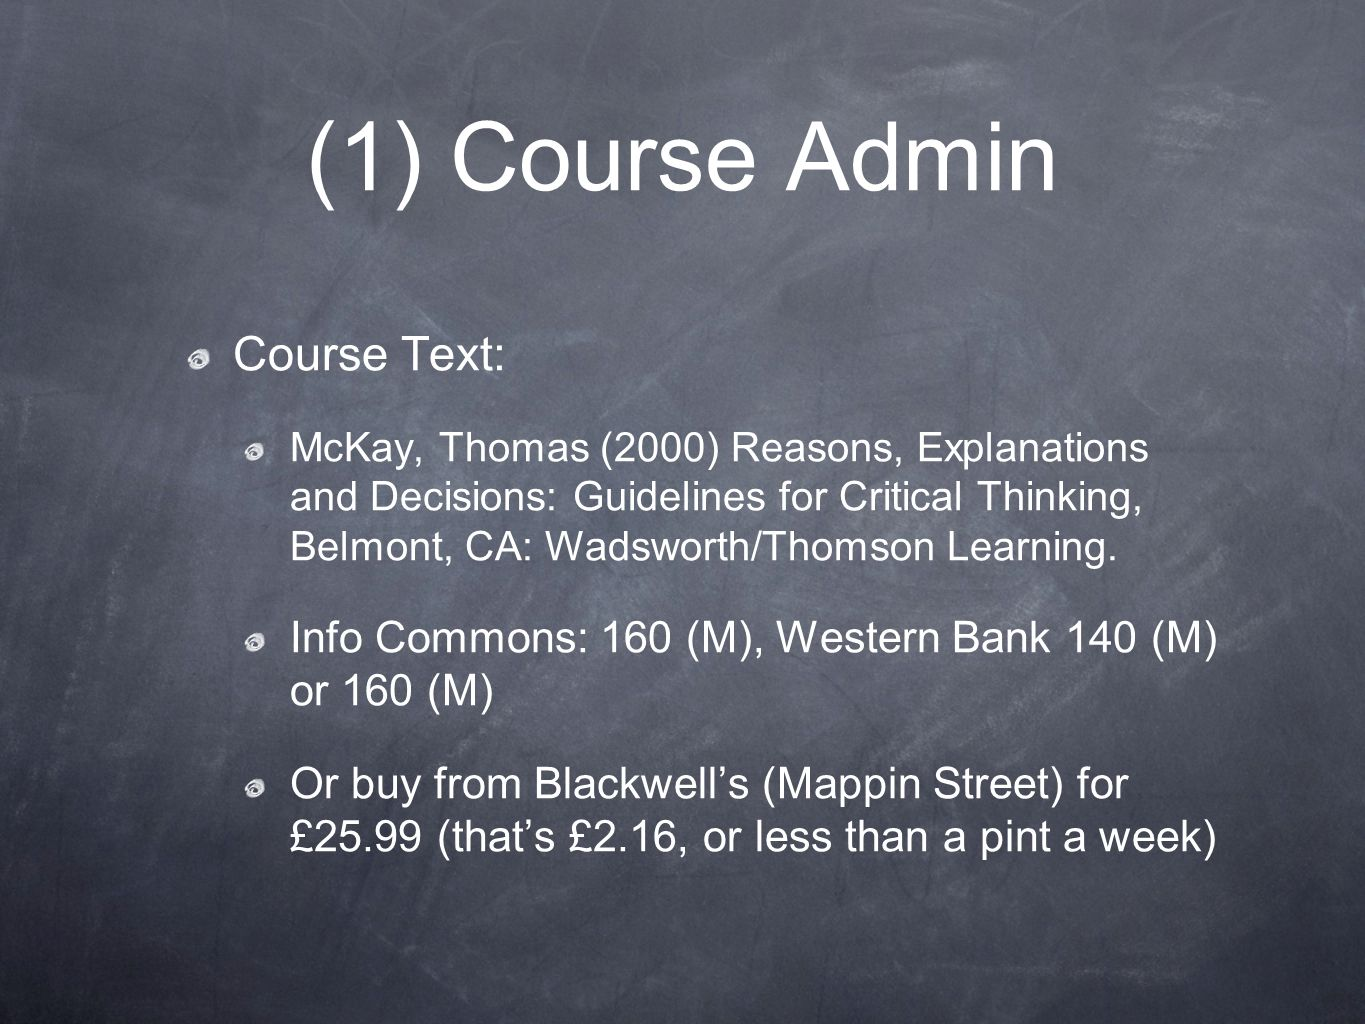 (1) Course Admin Course Text: McKay, Thomas (2000) Reasons, Explanations and Decisions: Guidelines for Critical Thinking, Belmont, CA: Wadsworth/Thoms